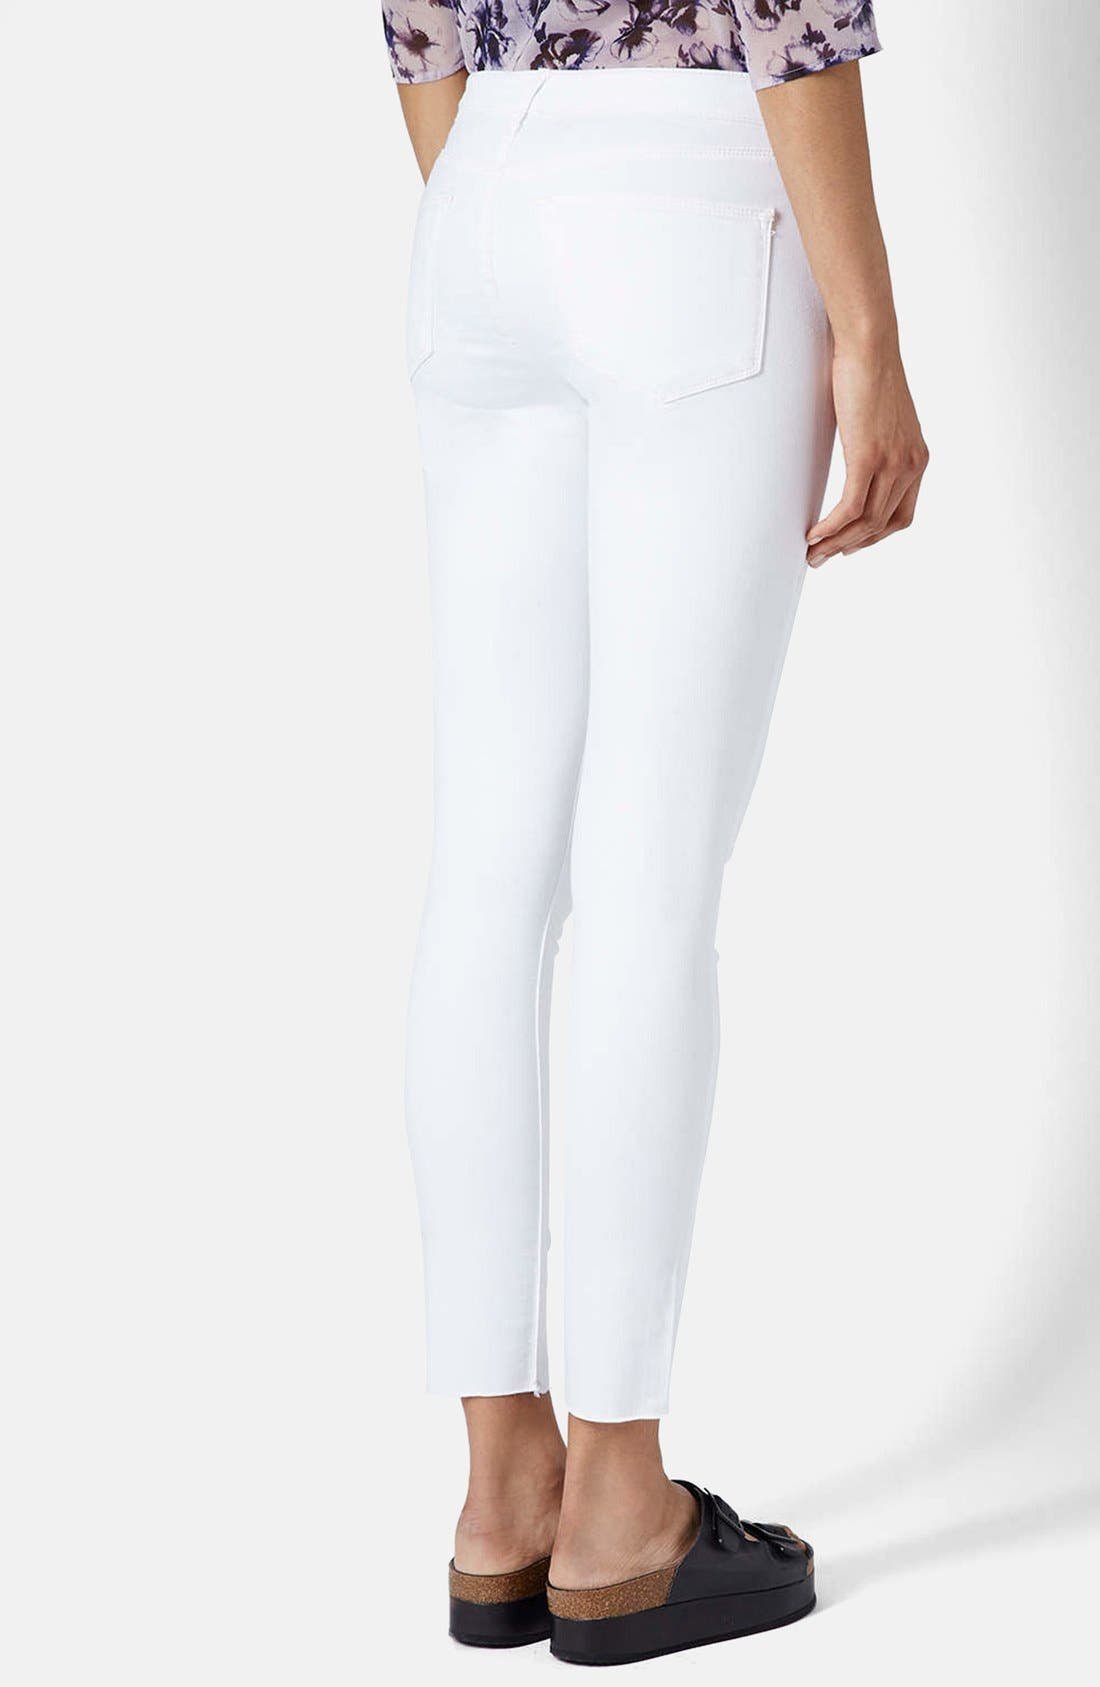 TOPSHOP,                             Moto 'Leigh' Ripped Ankle Skinny Jeans,                             Alternate thumbnail 3, color,                             100